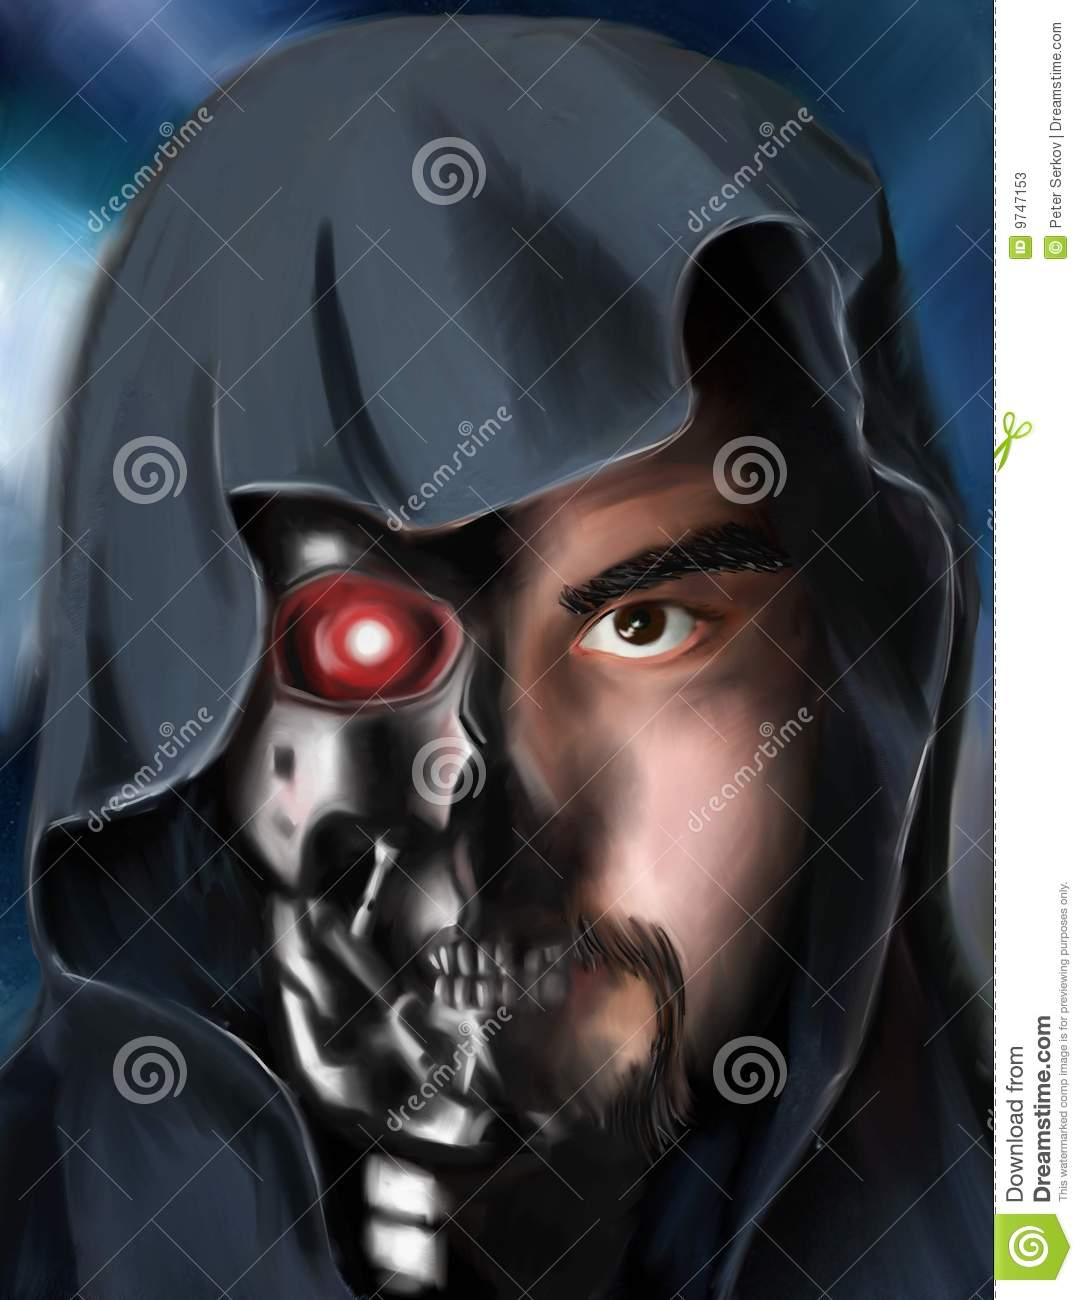 Cyborg stock illustration. Illustration of salvation ...